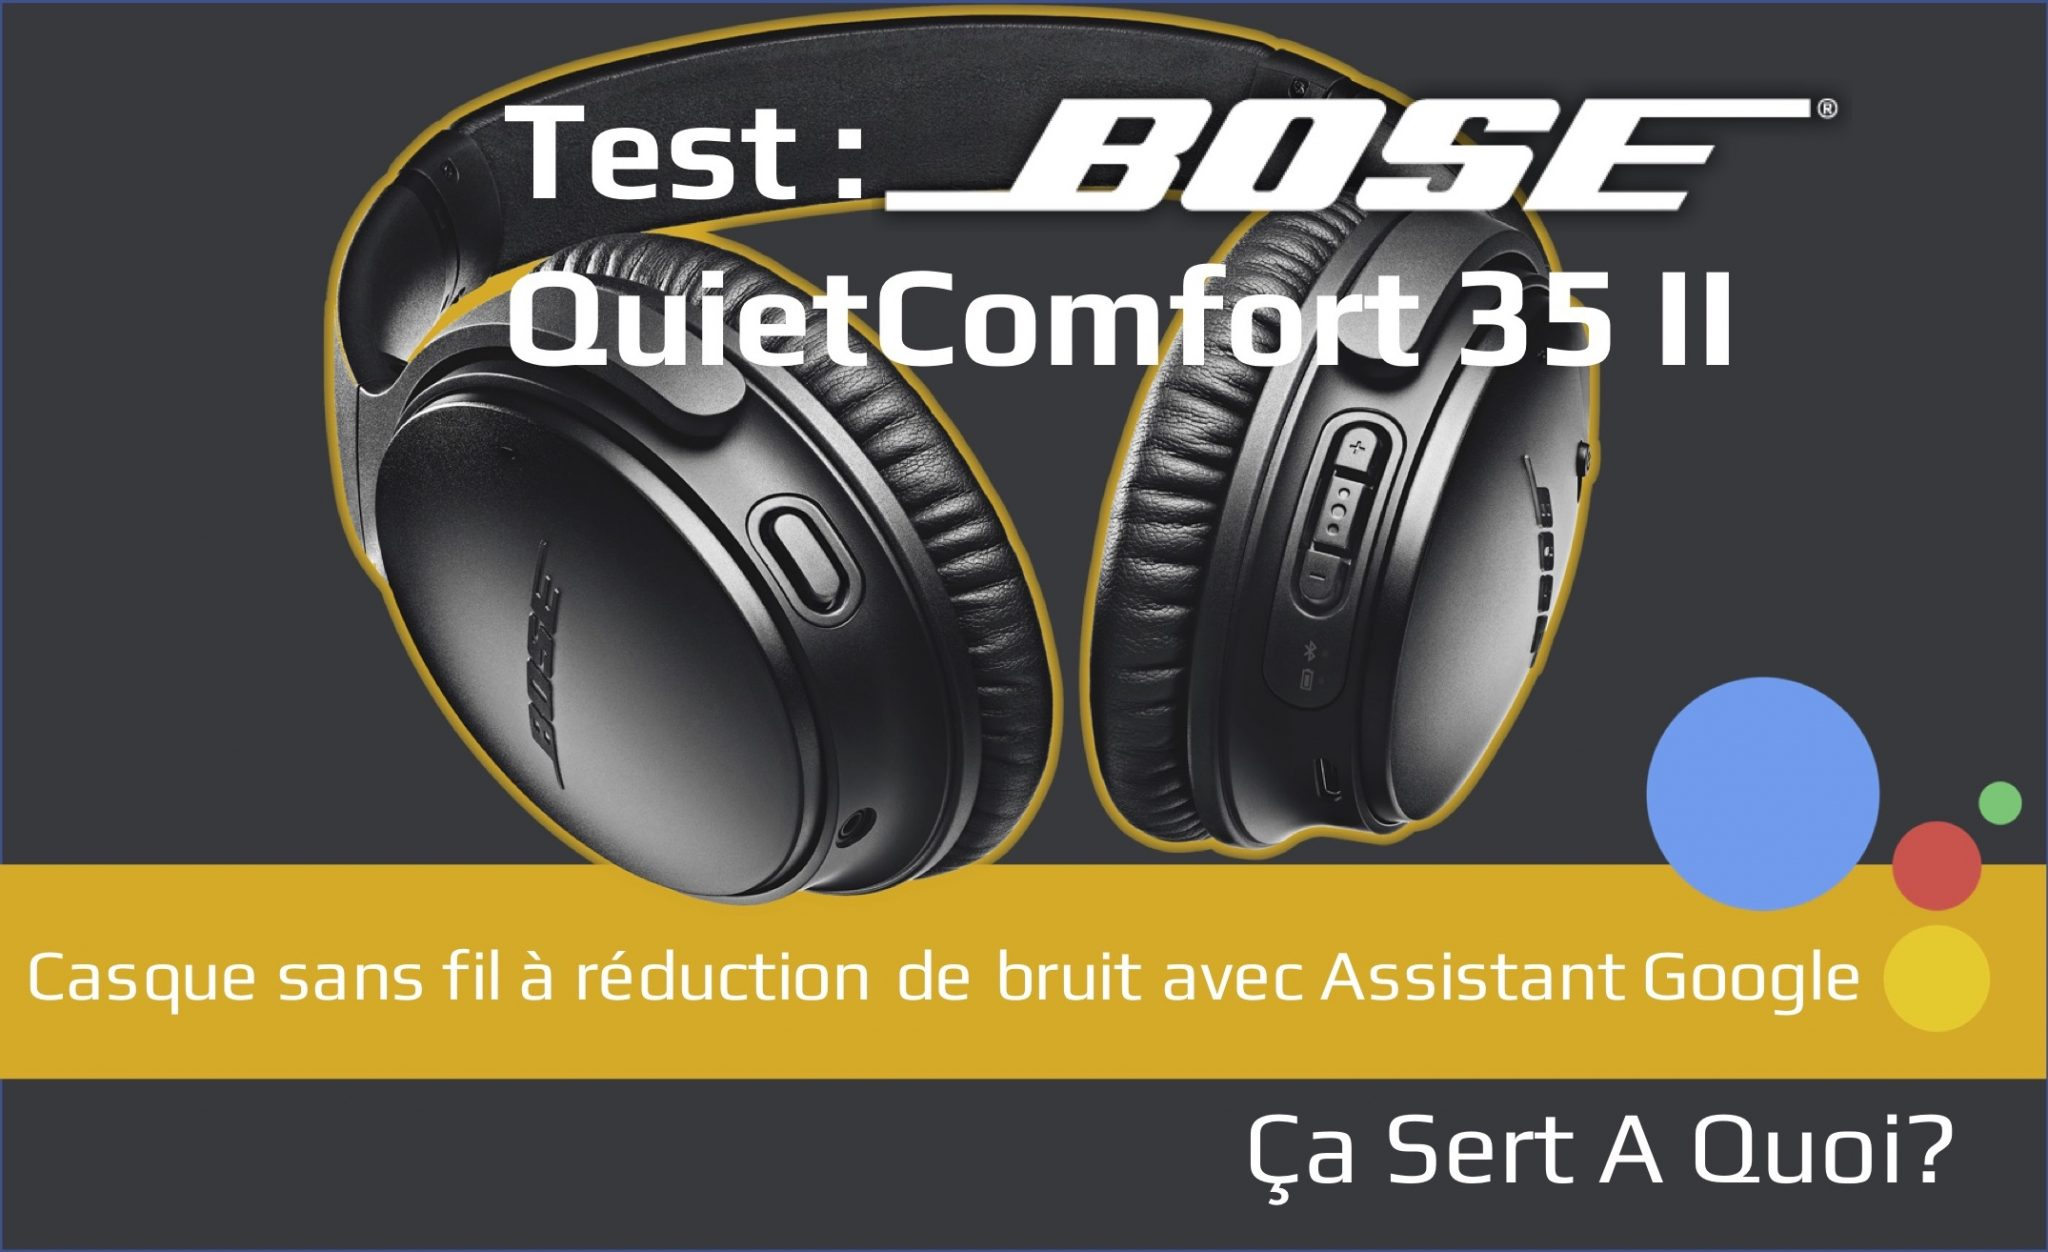 Test Casque Sans Fil Bose Quietcomfort 35 Ii Avec Google Assistant